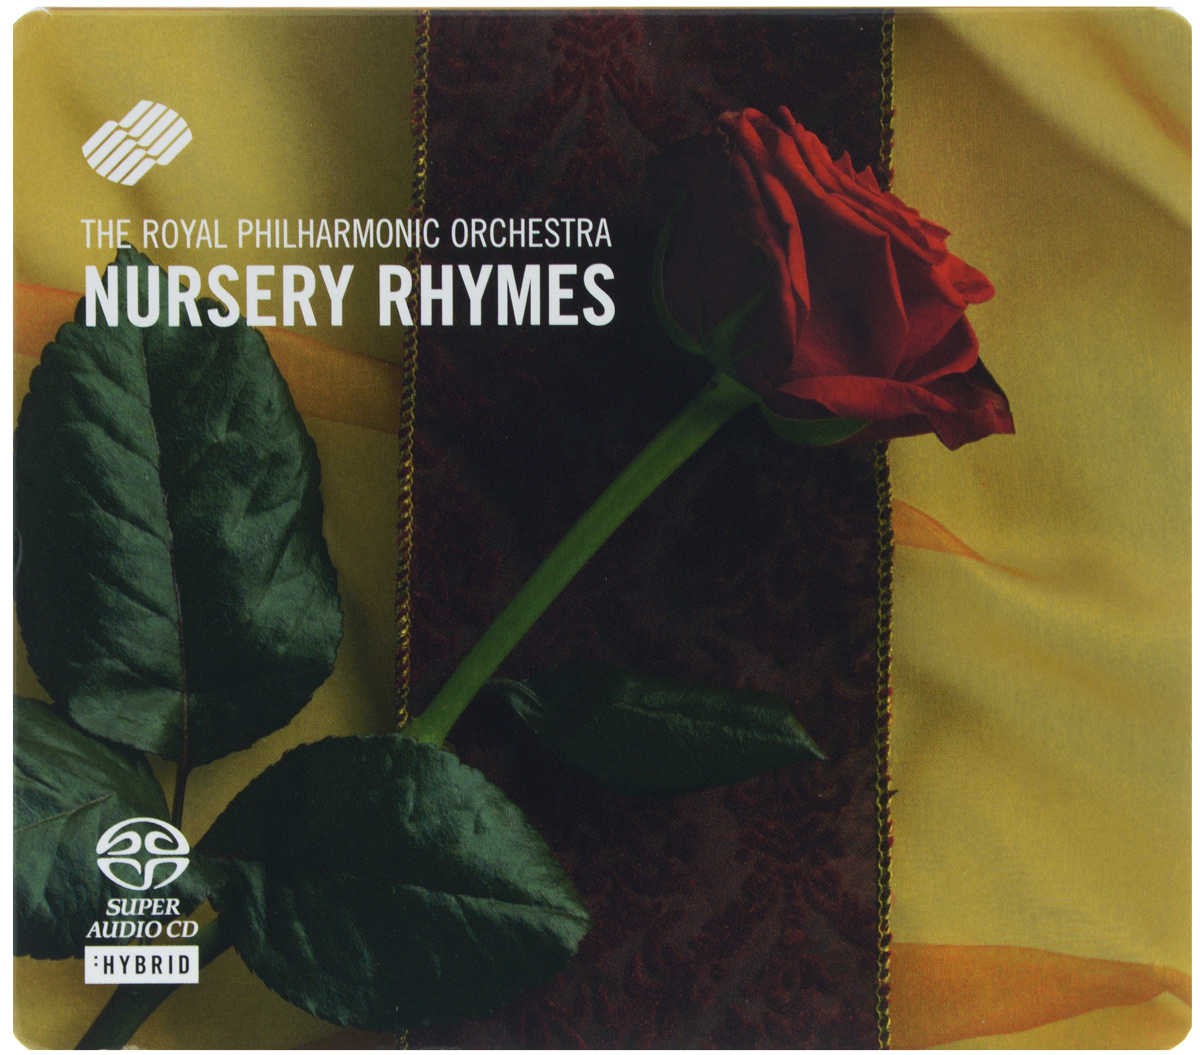 The Royal Philharmonic Orchestra The Royal Philharmonic Orchestra. Nursery Rhymes (SACD) рени флеминг андреас делфс the royal philharmonic orchestra renee fleming saсred songs